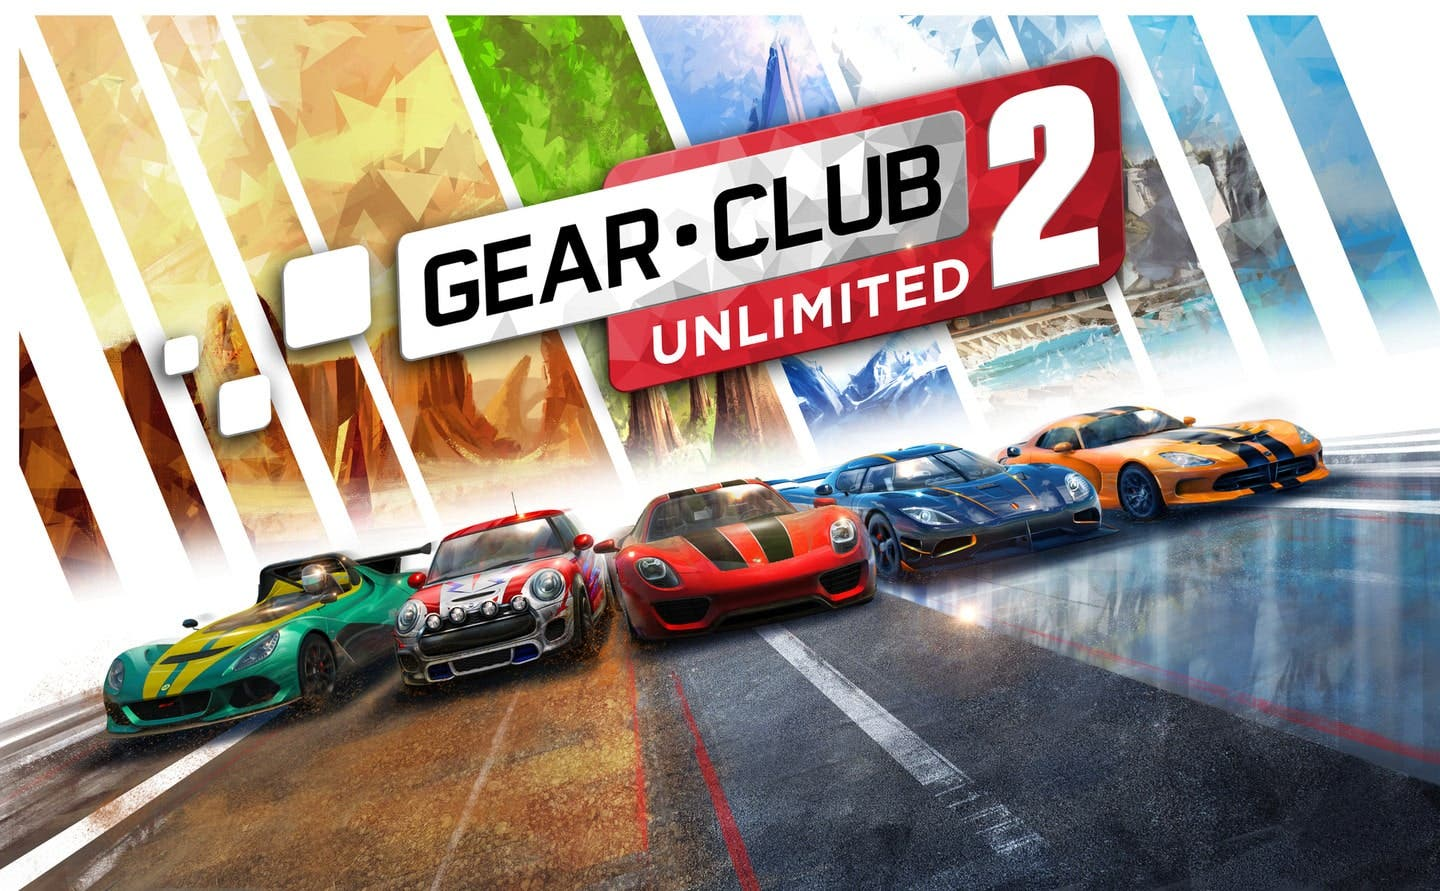 [Act.] Comparativa en vídeo de Gear.Club Unlimited 2 en modo televisor y portátil